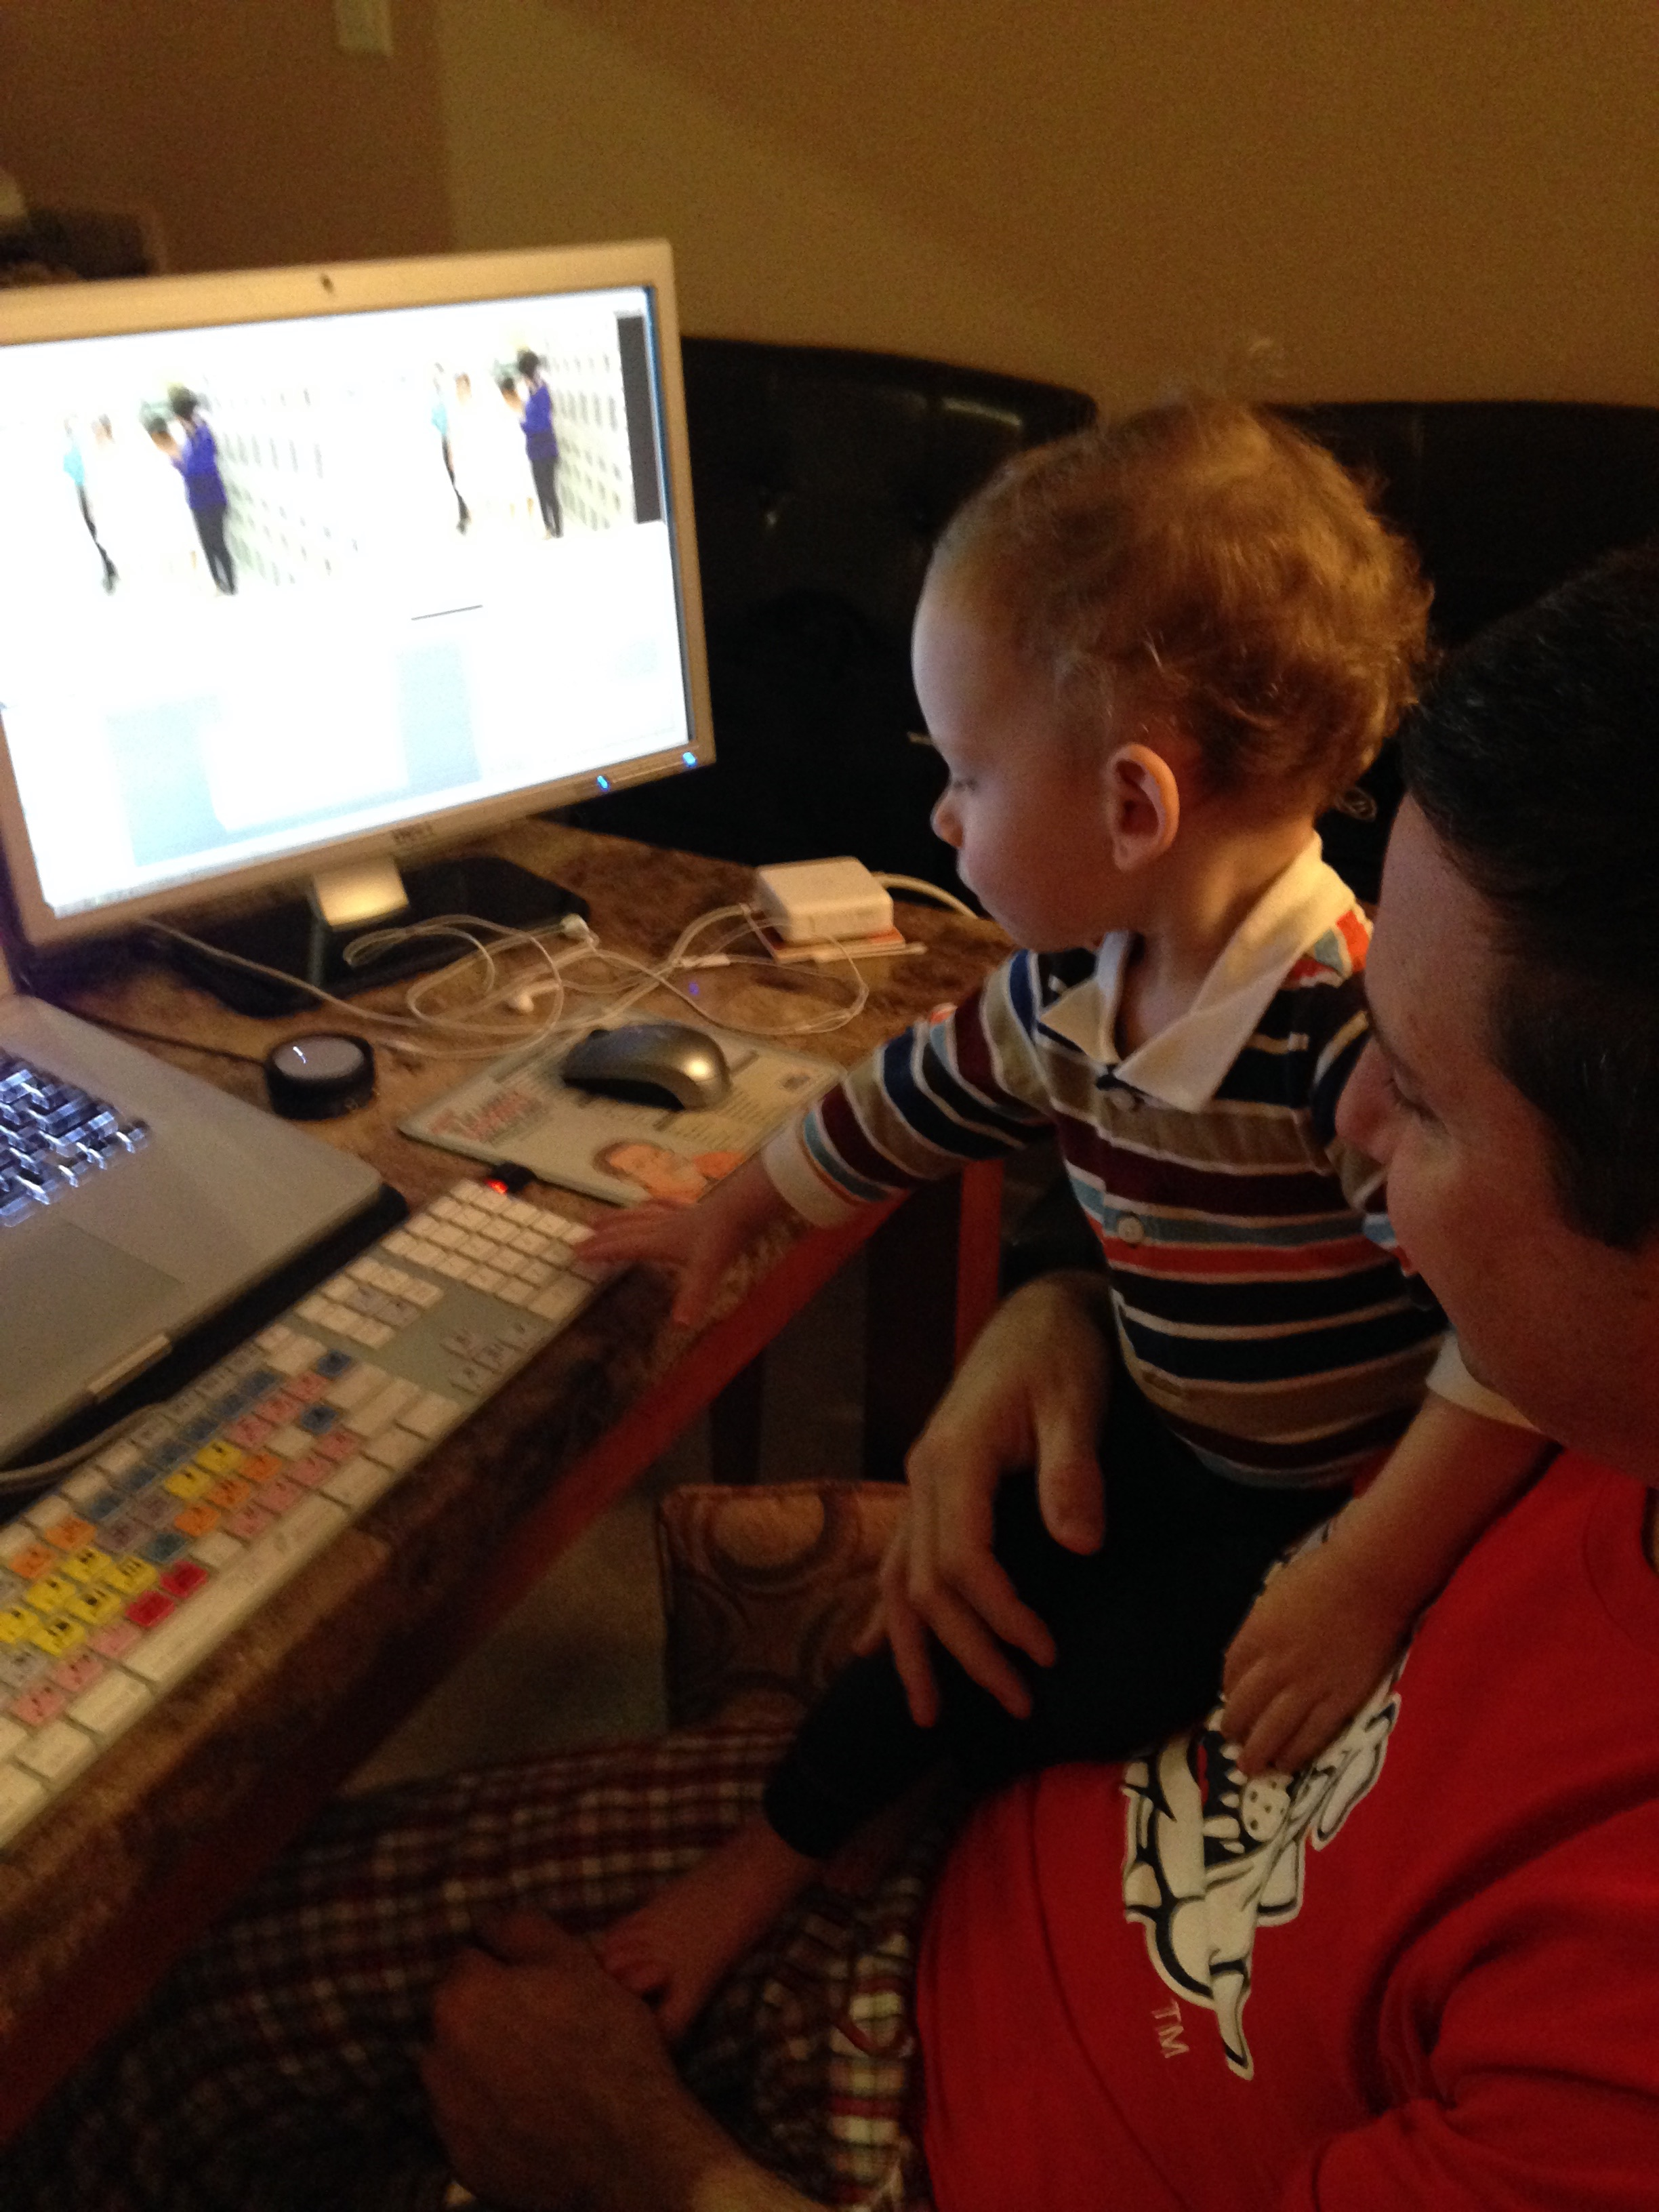 Editing with a 1-year-Old